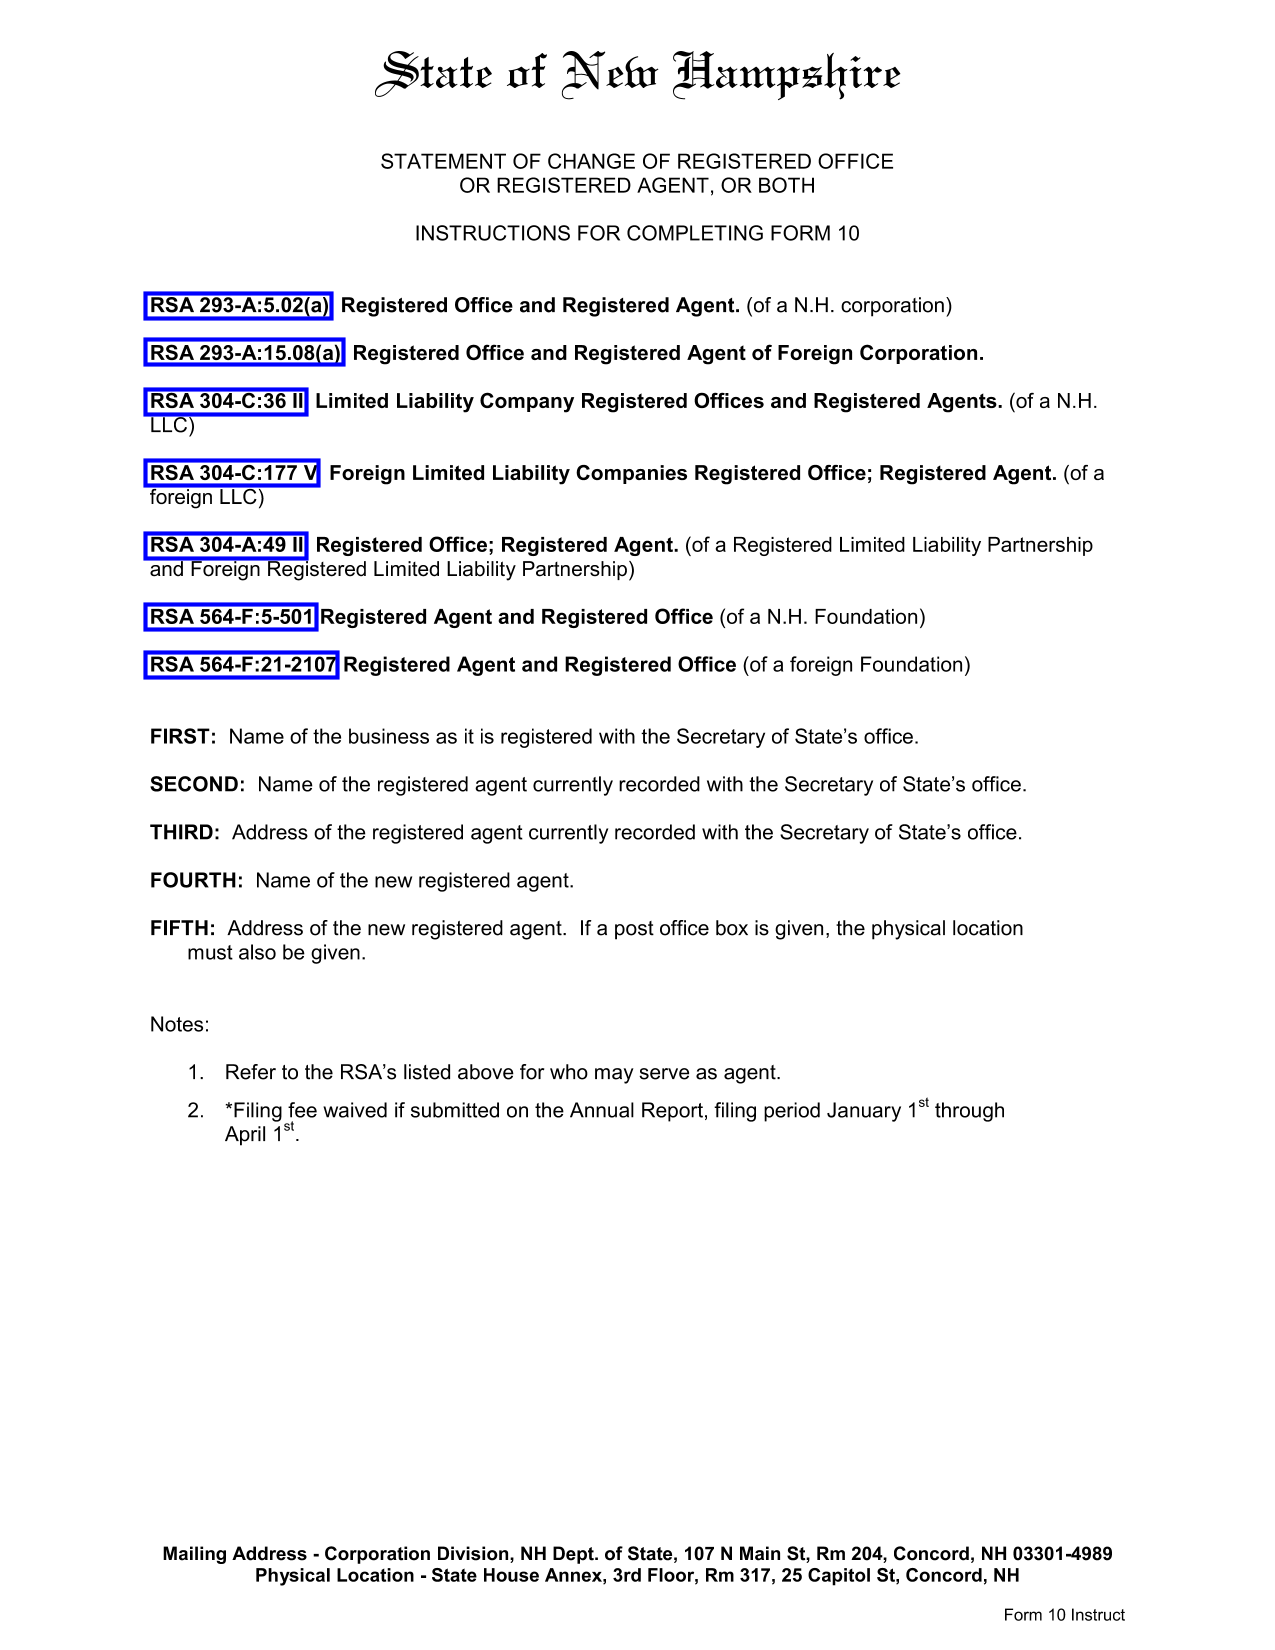 new-hampshire-statement-of-change-of-registered-agent